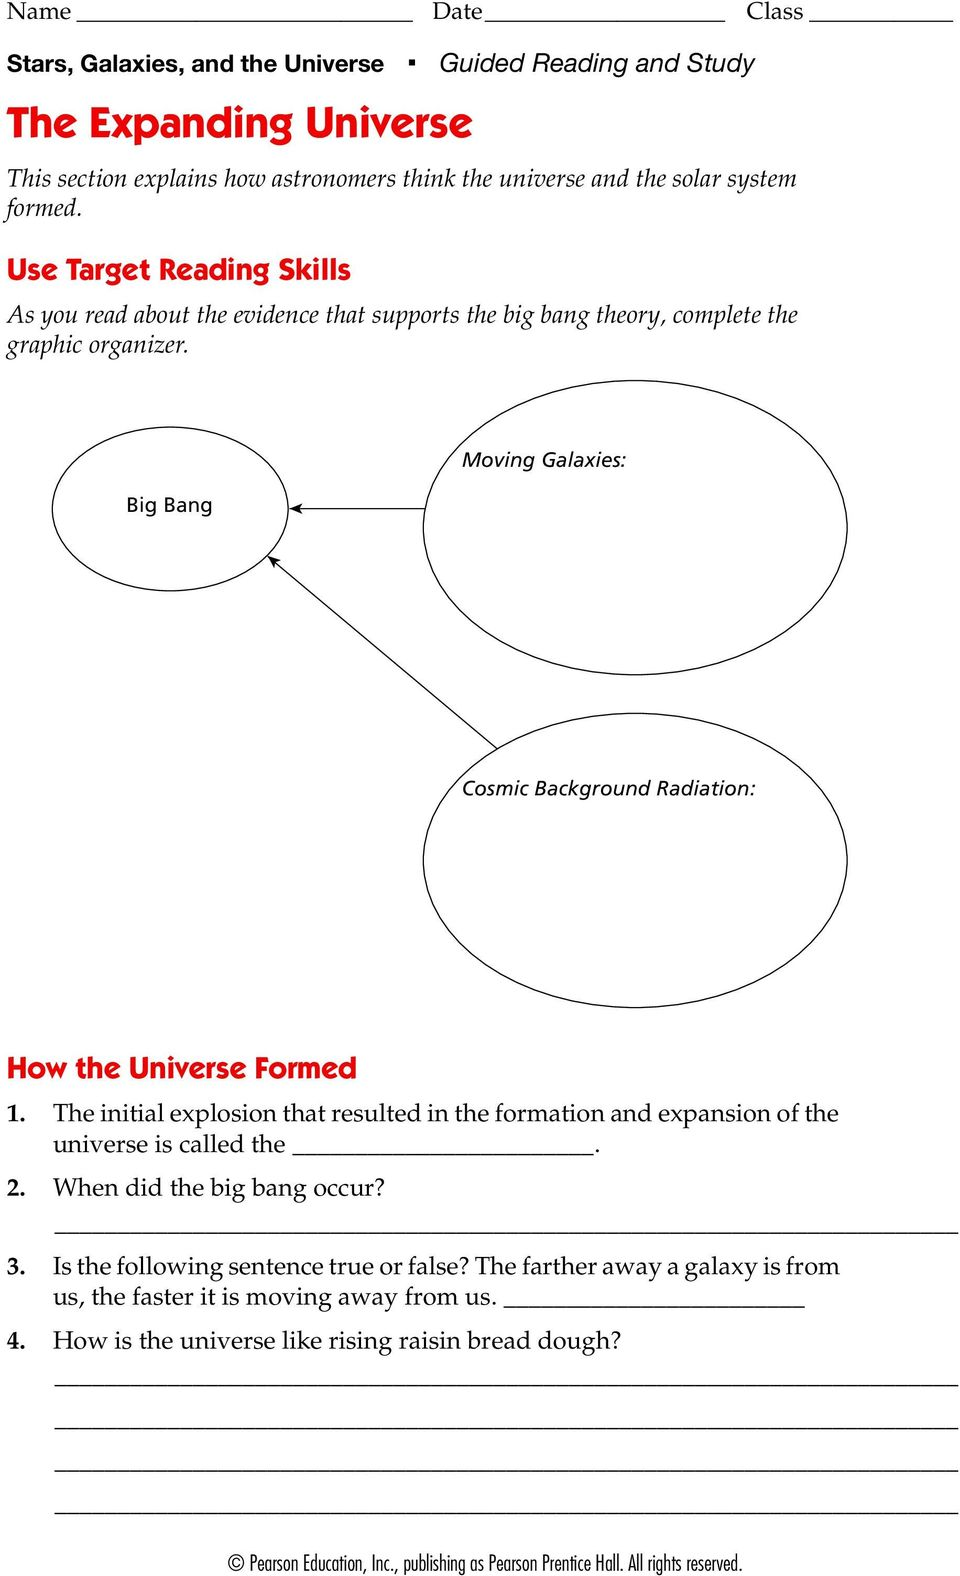 The solar system guided reading and study answers